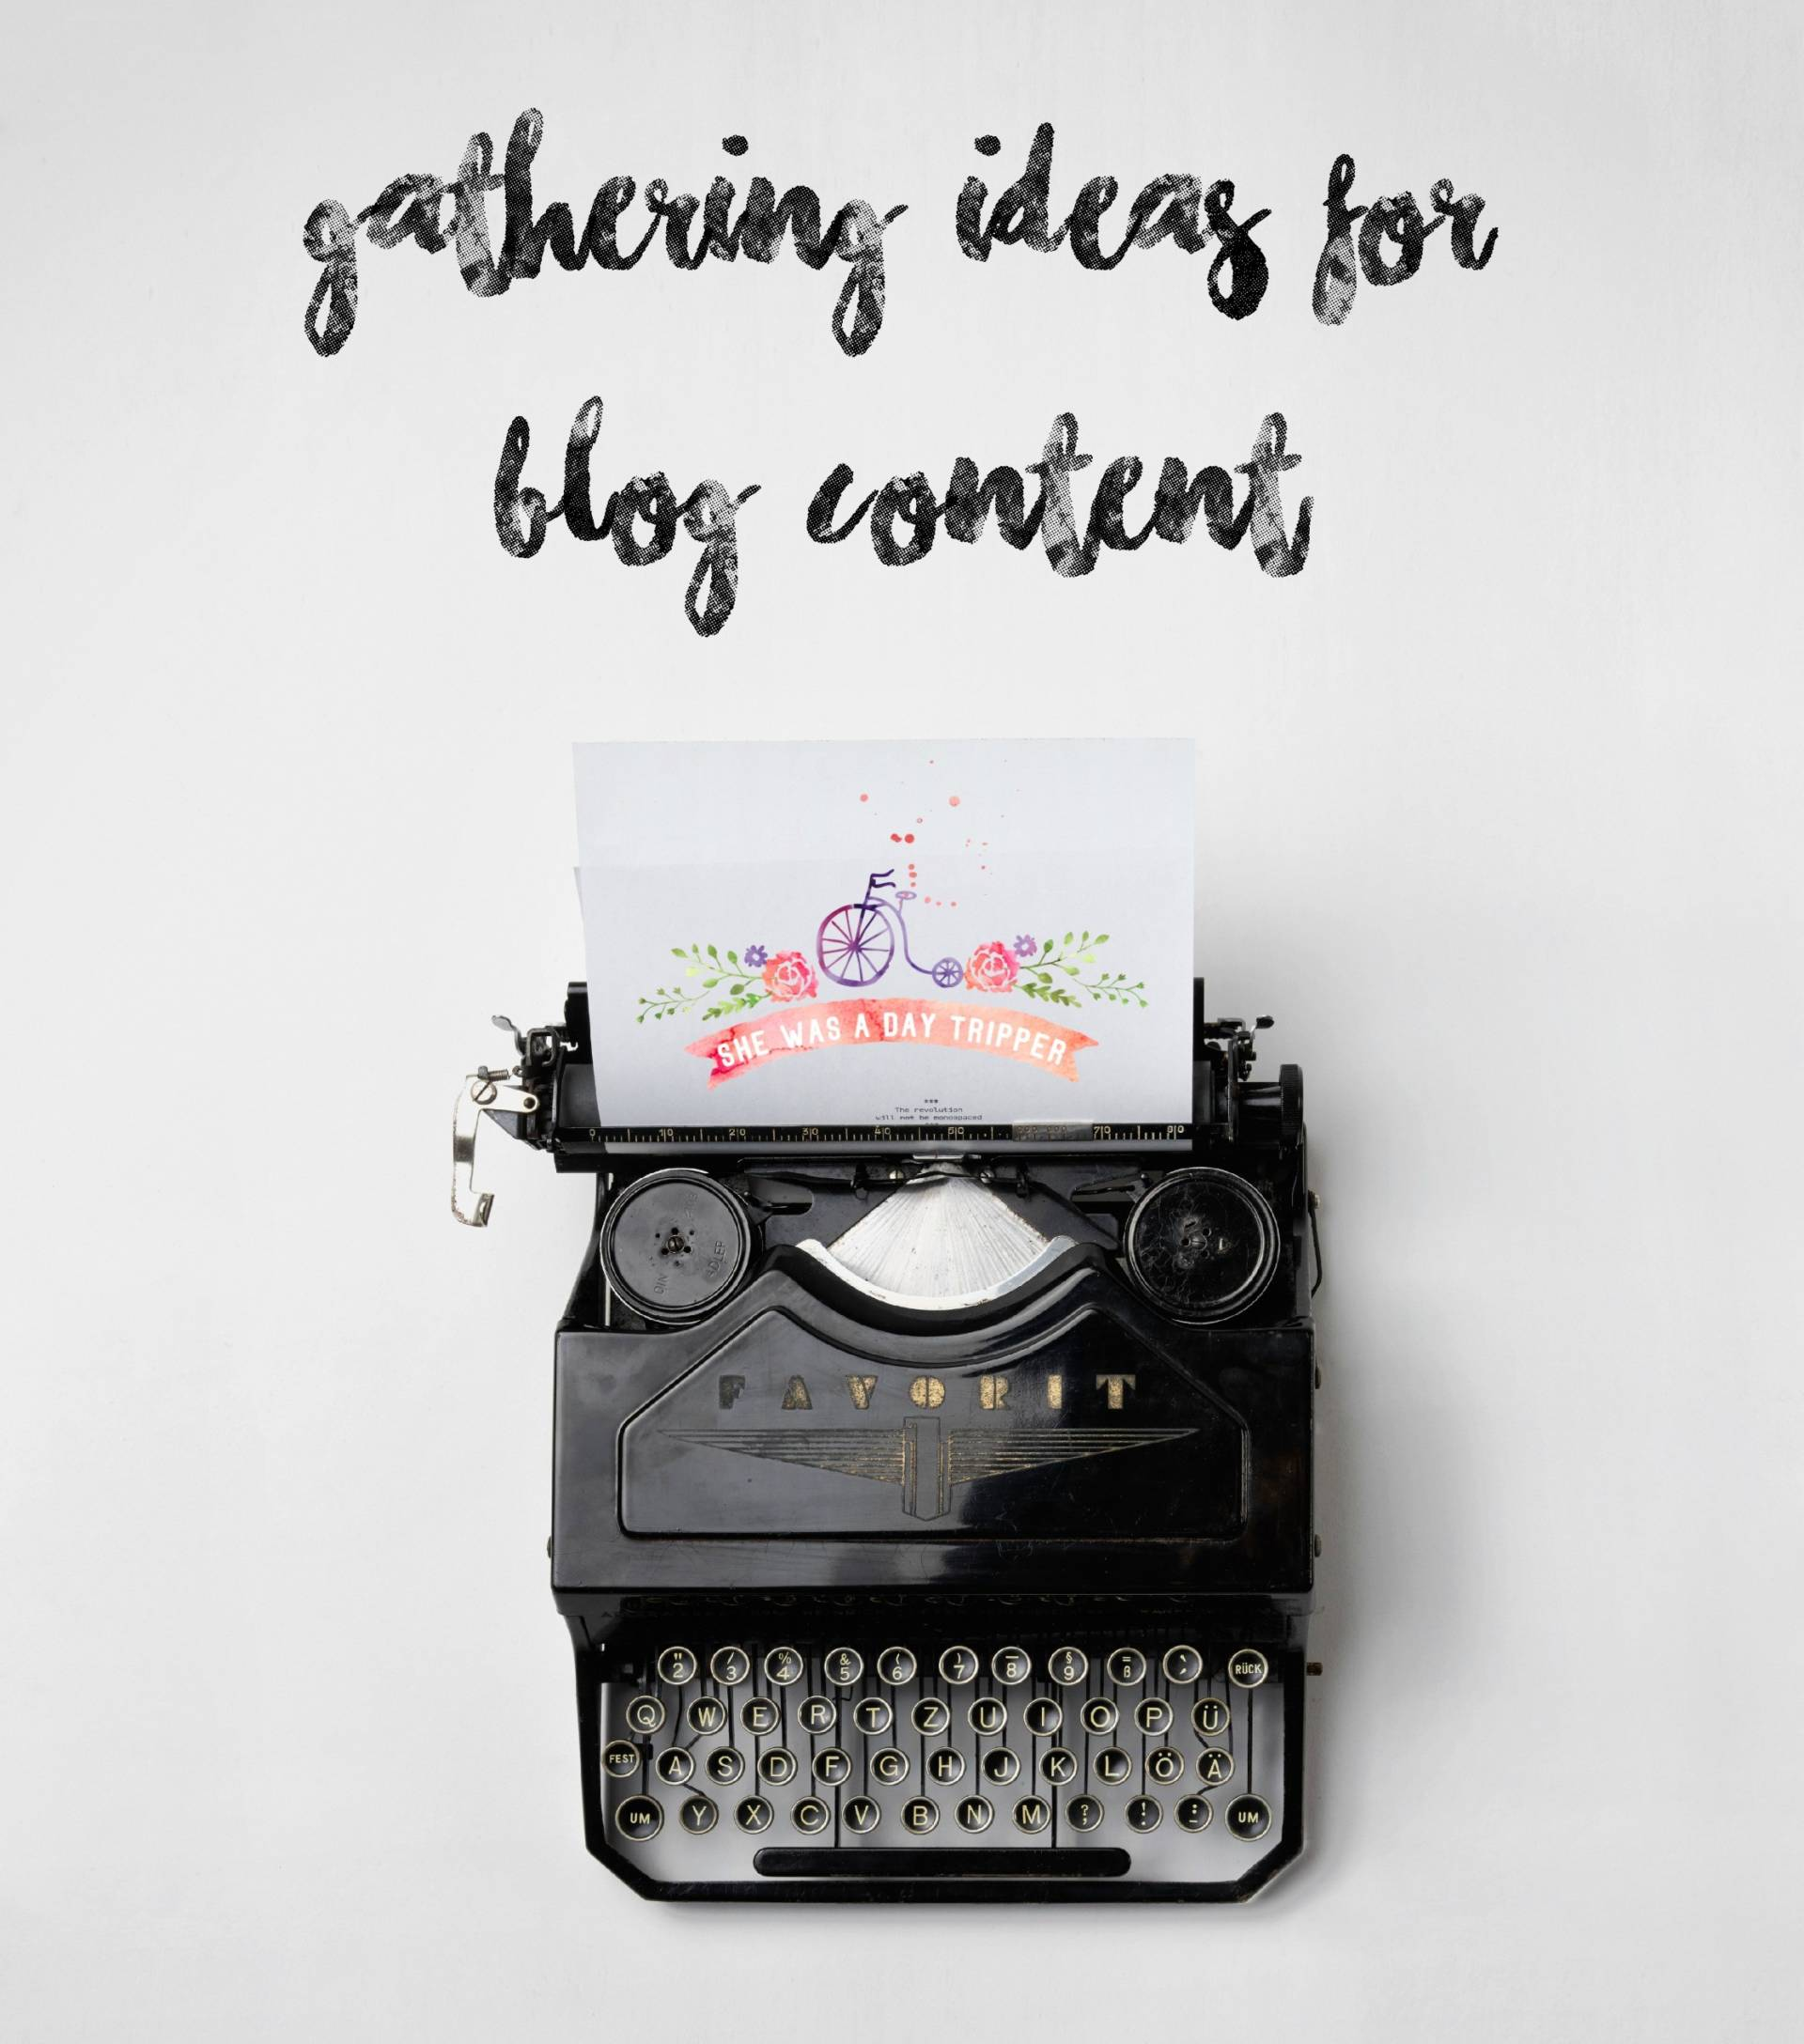 New blog content ideas